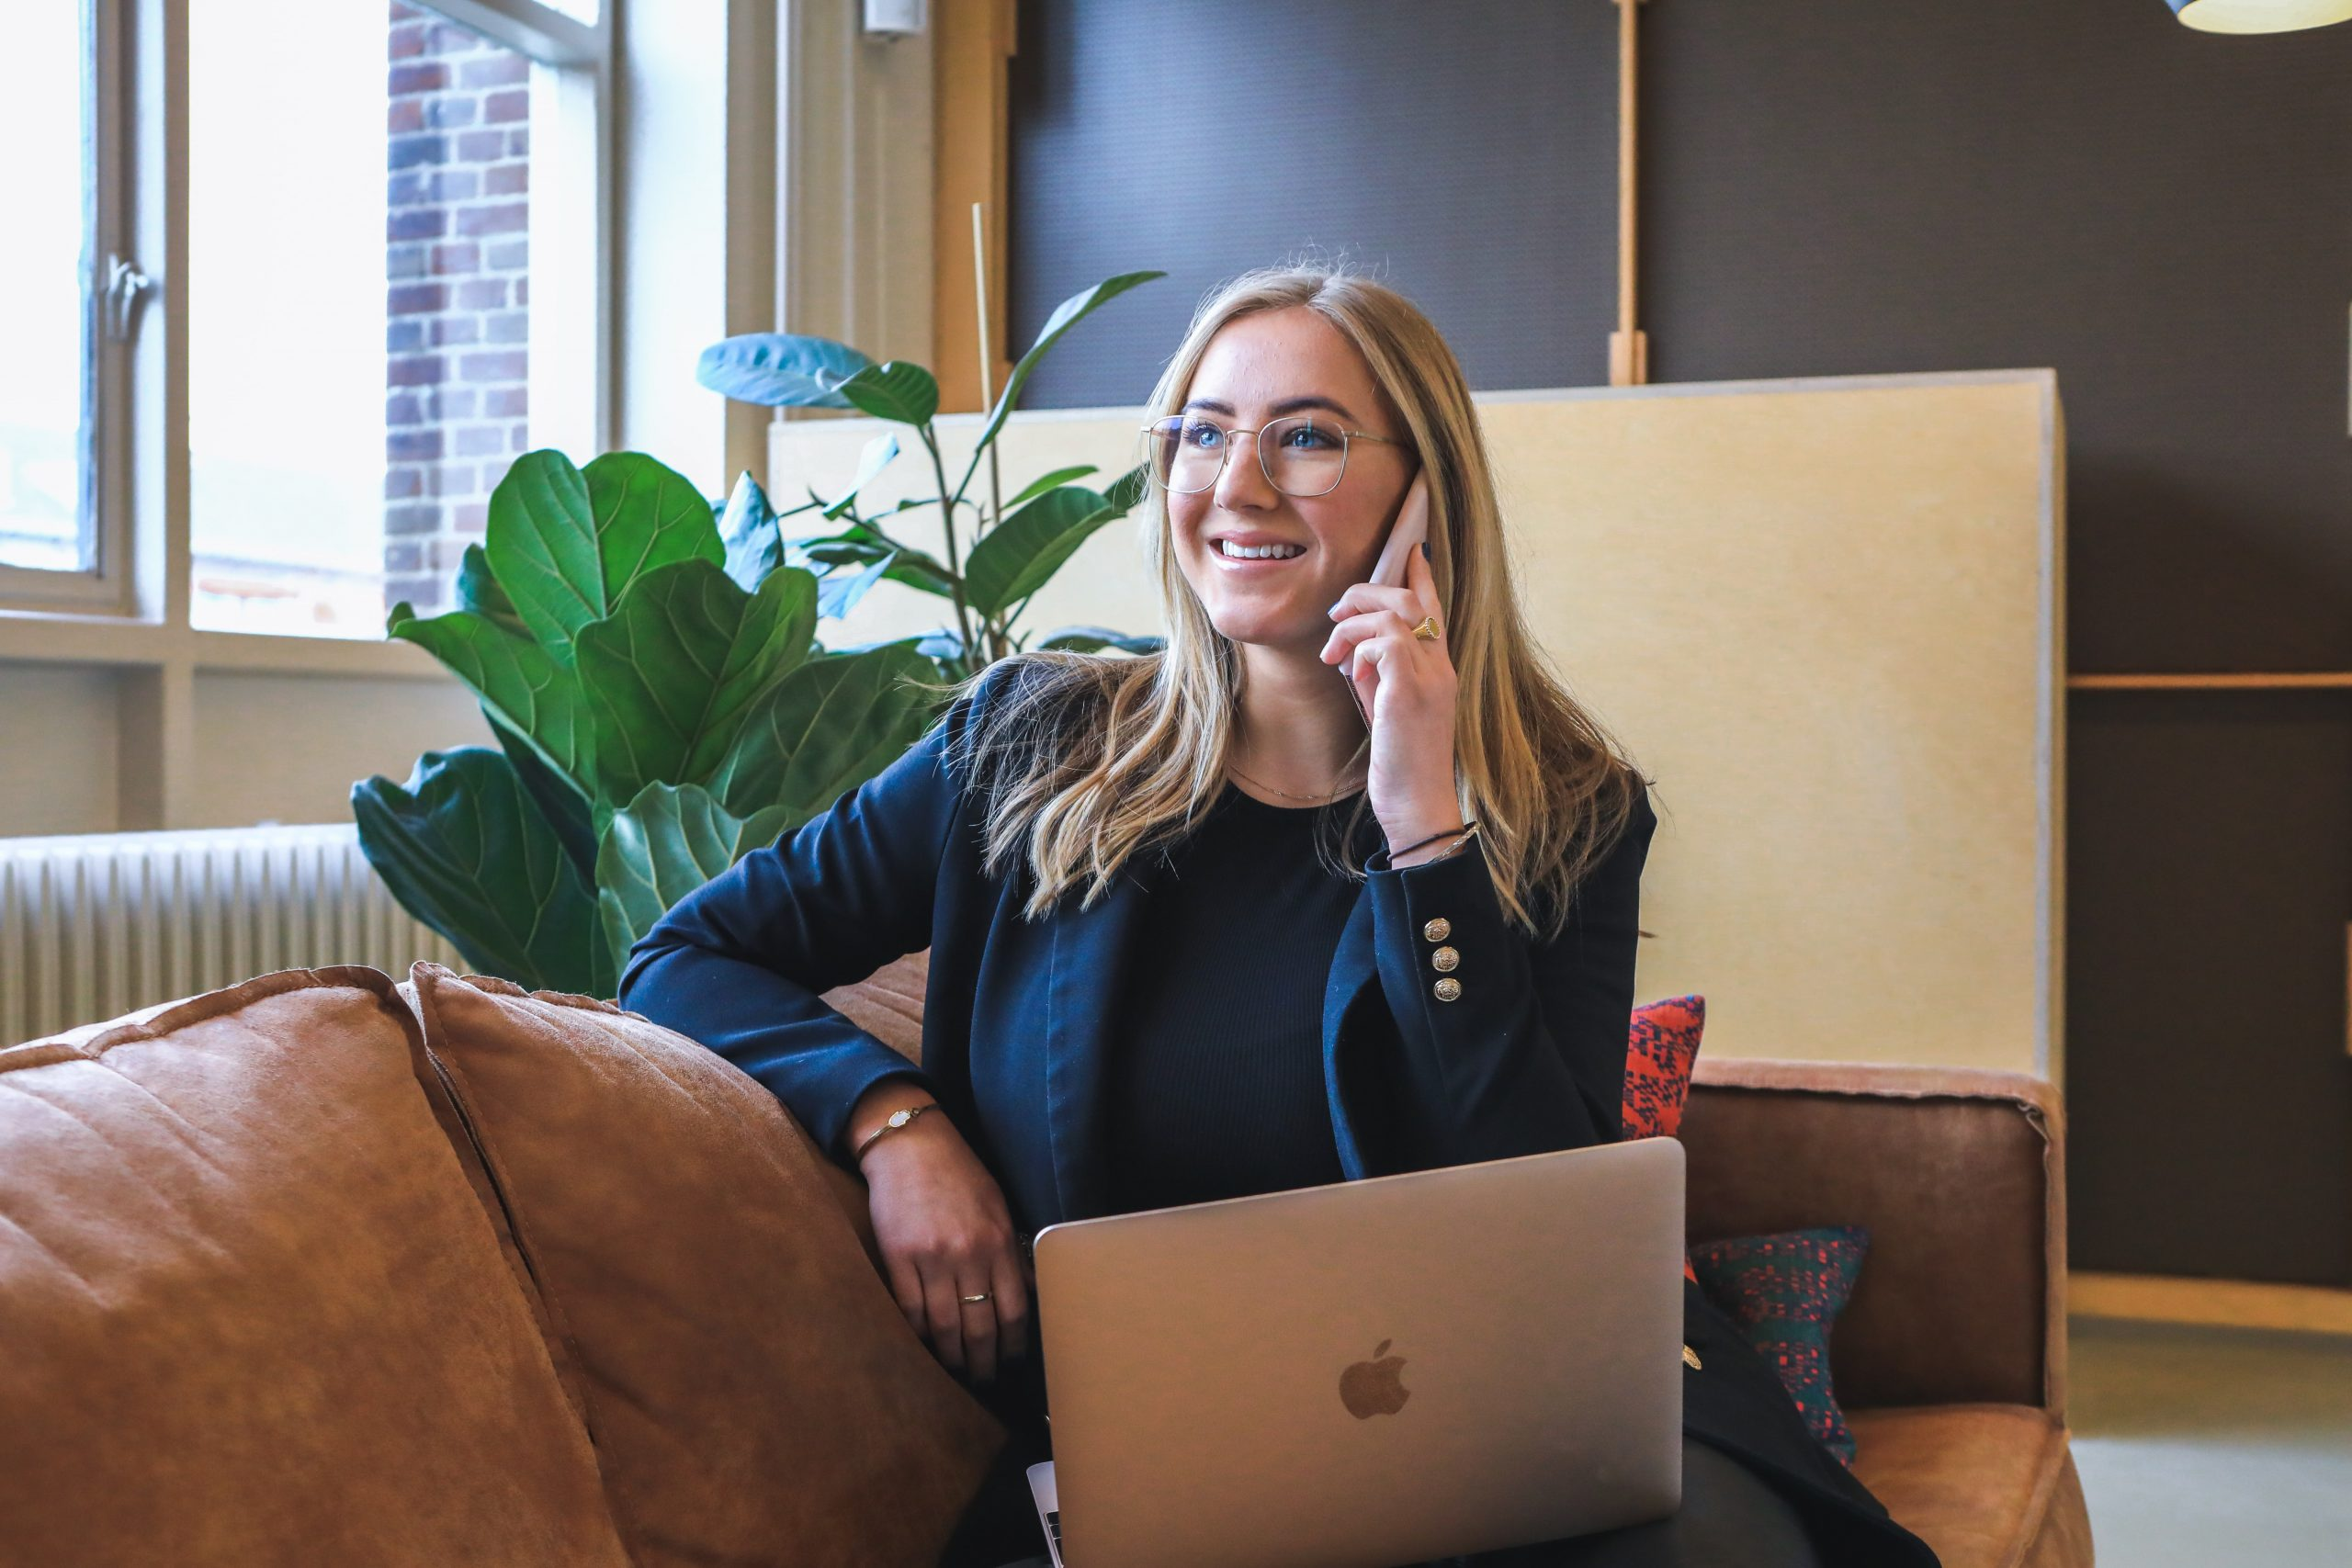 A business owner conducting a productive phone interview